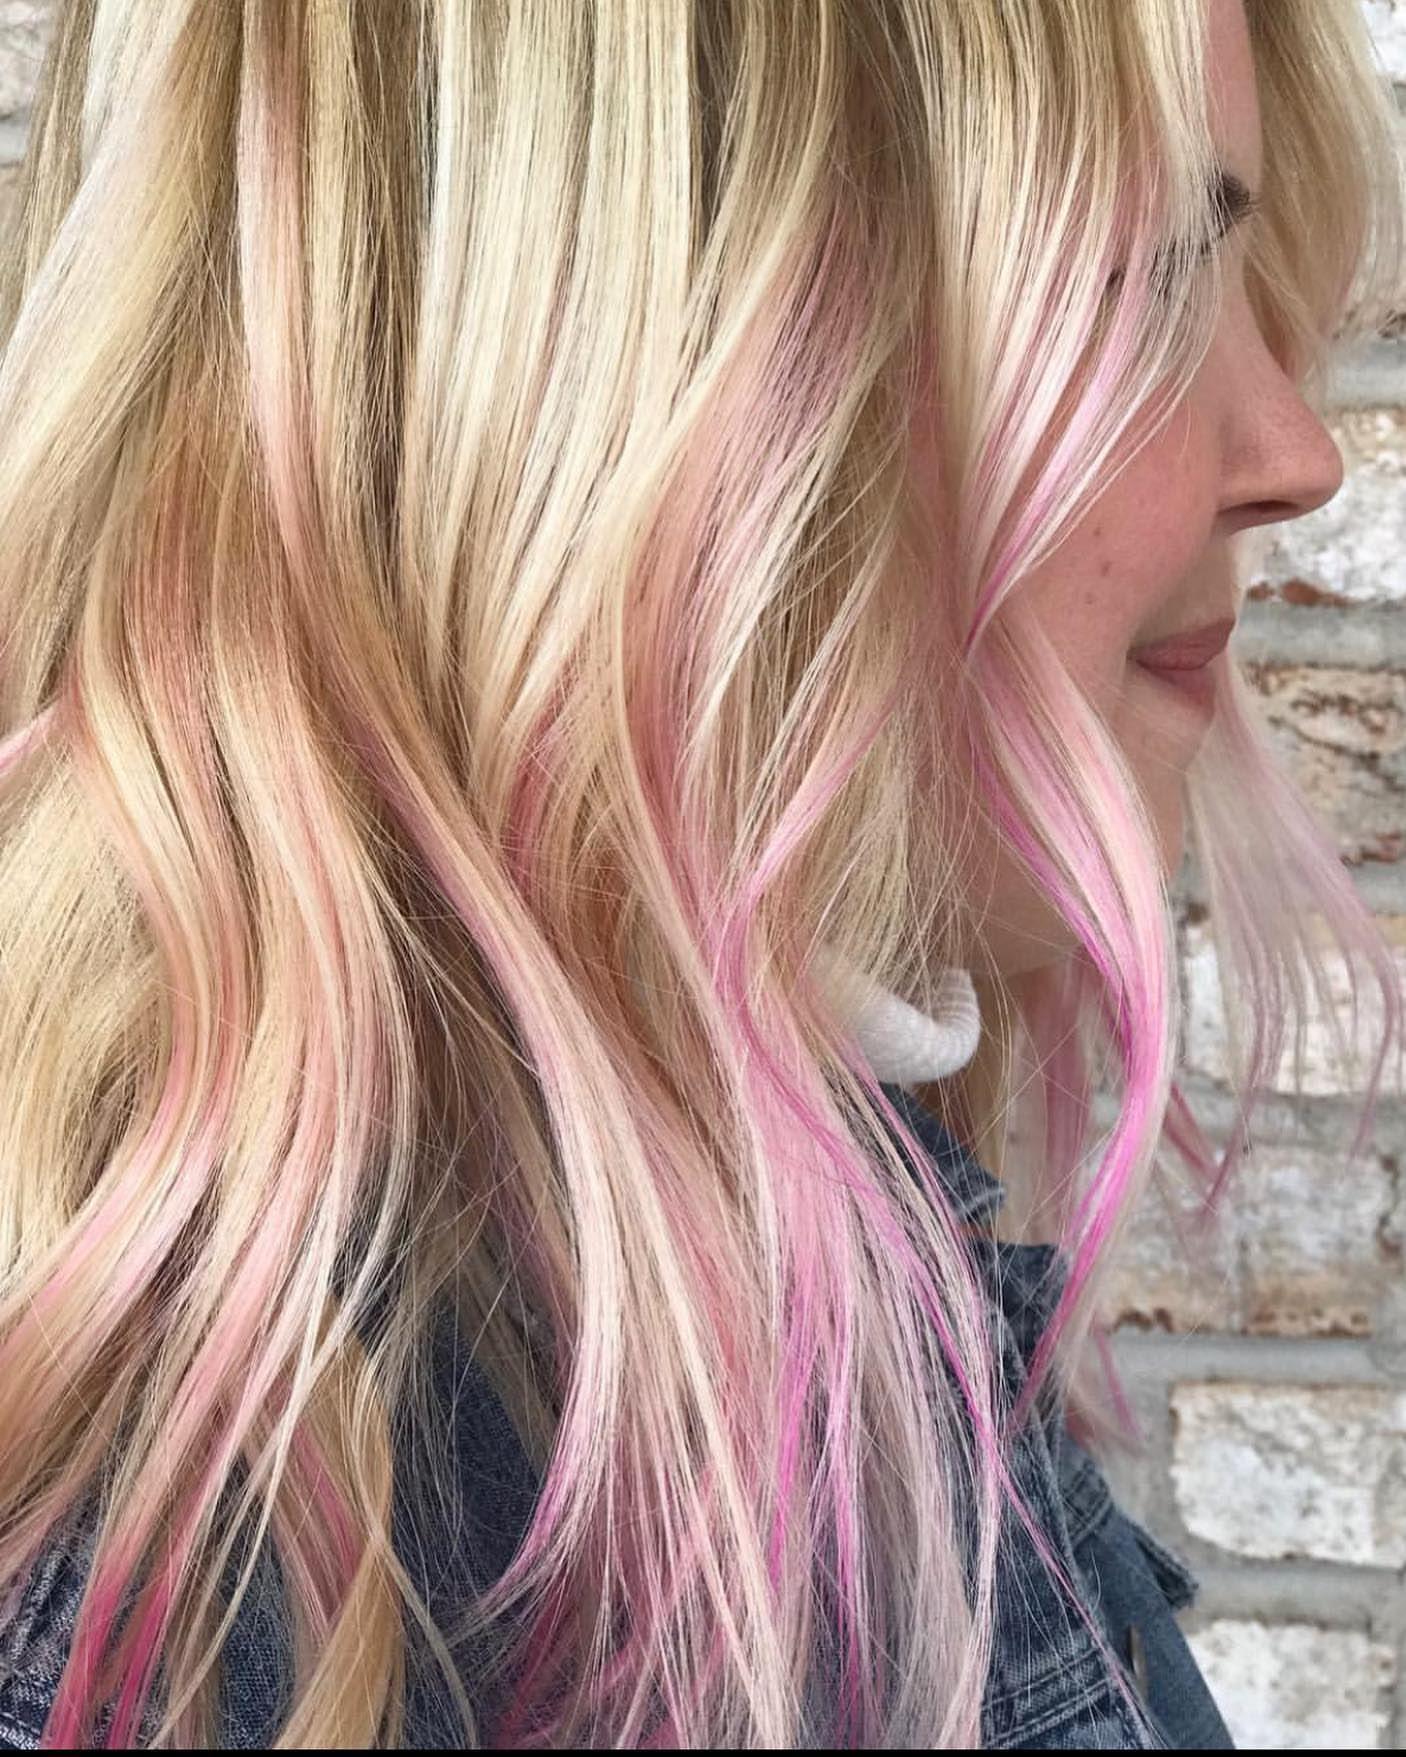 On Wednesdays We Wear Pink In Our Hair This Color Is Perfect For Breastcancerawareness Hair Color By Elle Hairpainted Hair Long Hair Styles Pink Hair